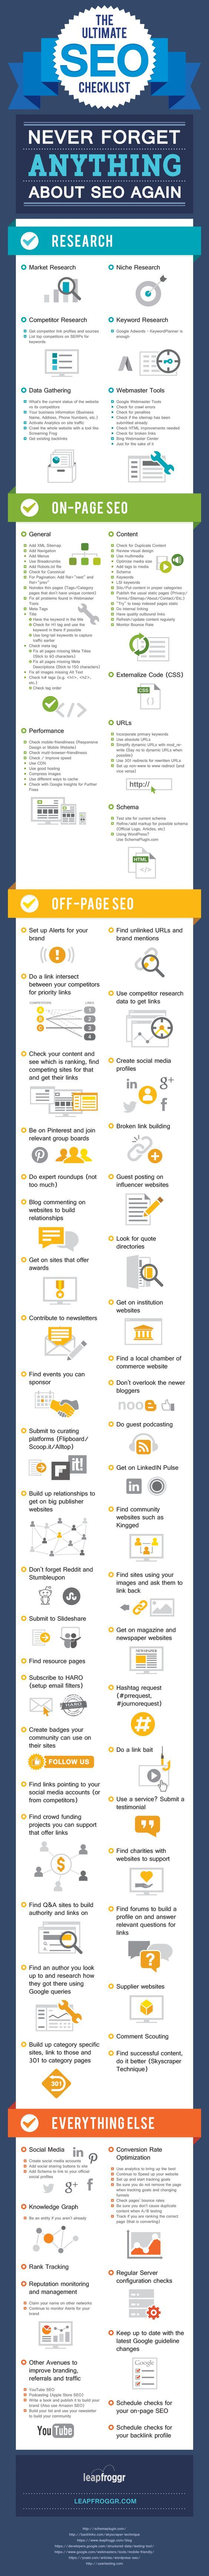 The only SEO Checklist you'll ever need. (I wish!! - Google will see to it that it isn't)